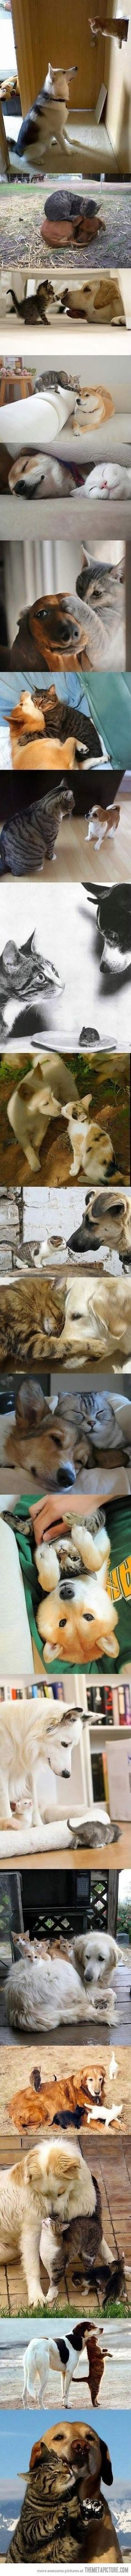 Who says cats and dogs can't get along?